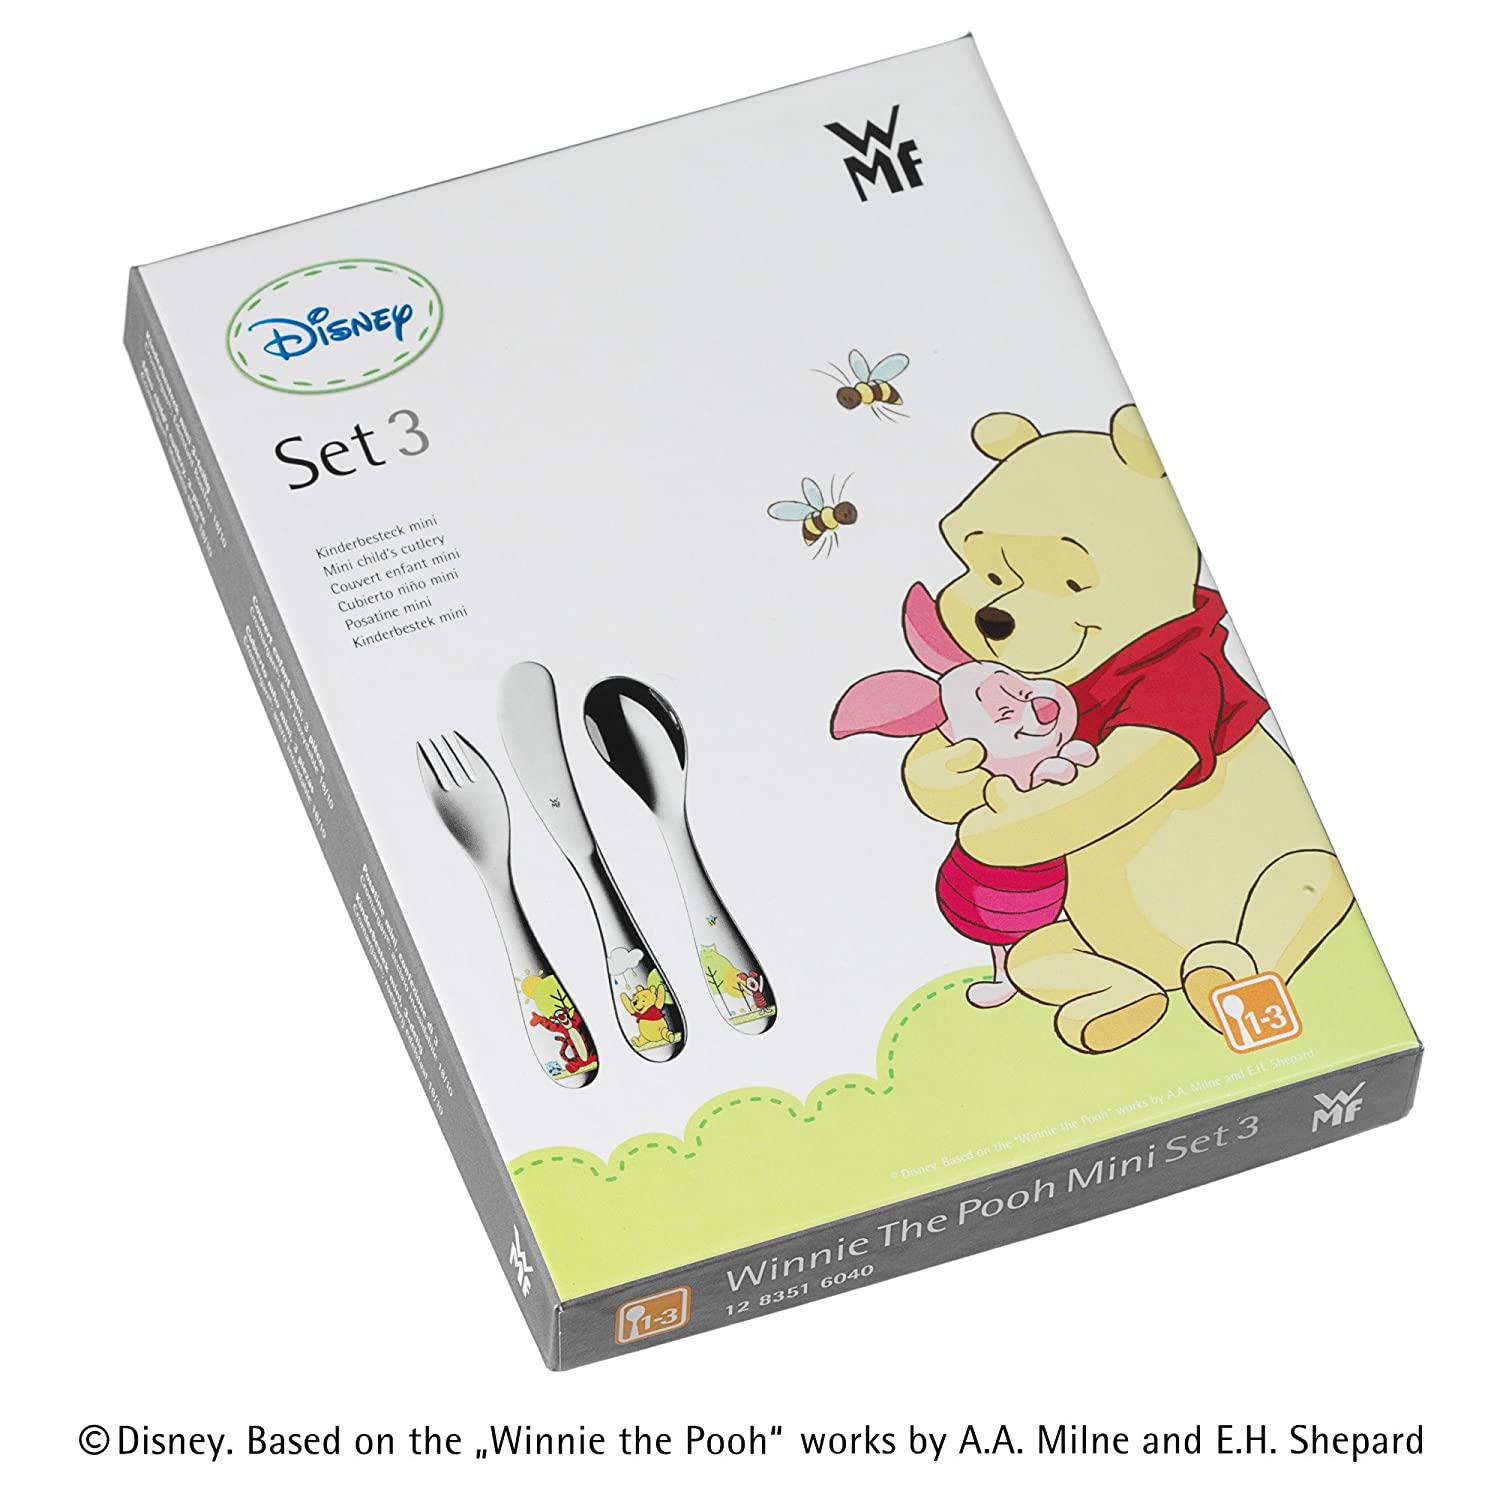 Amazon.com: WMF Childrens Cutlery Mini Disney Winnie the Pooh, 3 Pieces, 1283516040: Toys & Games